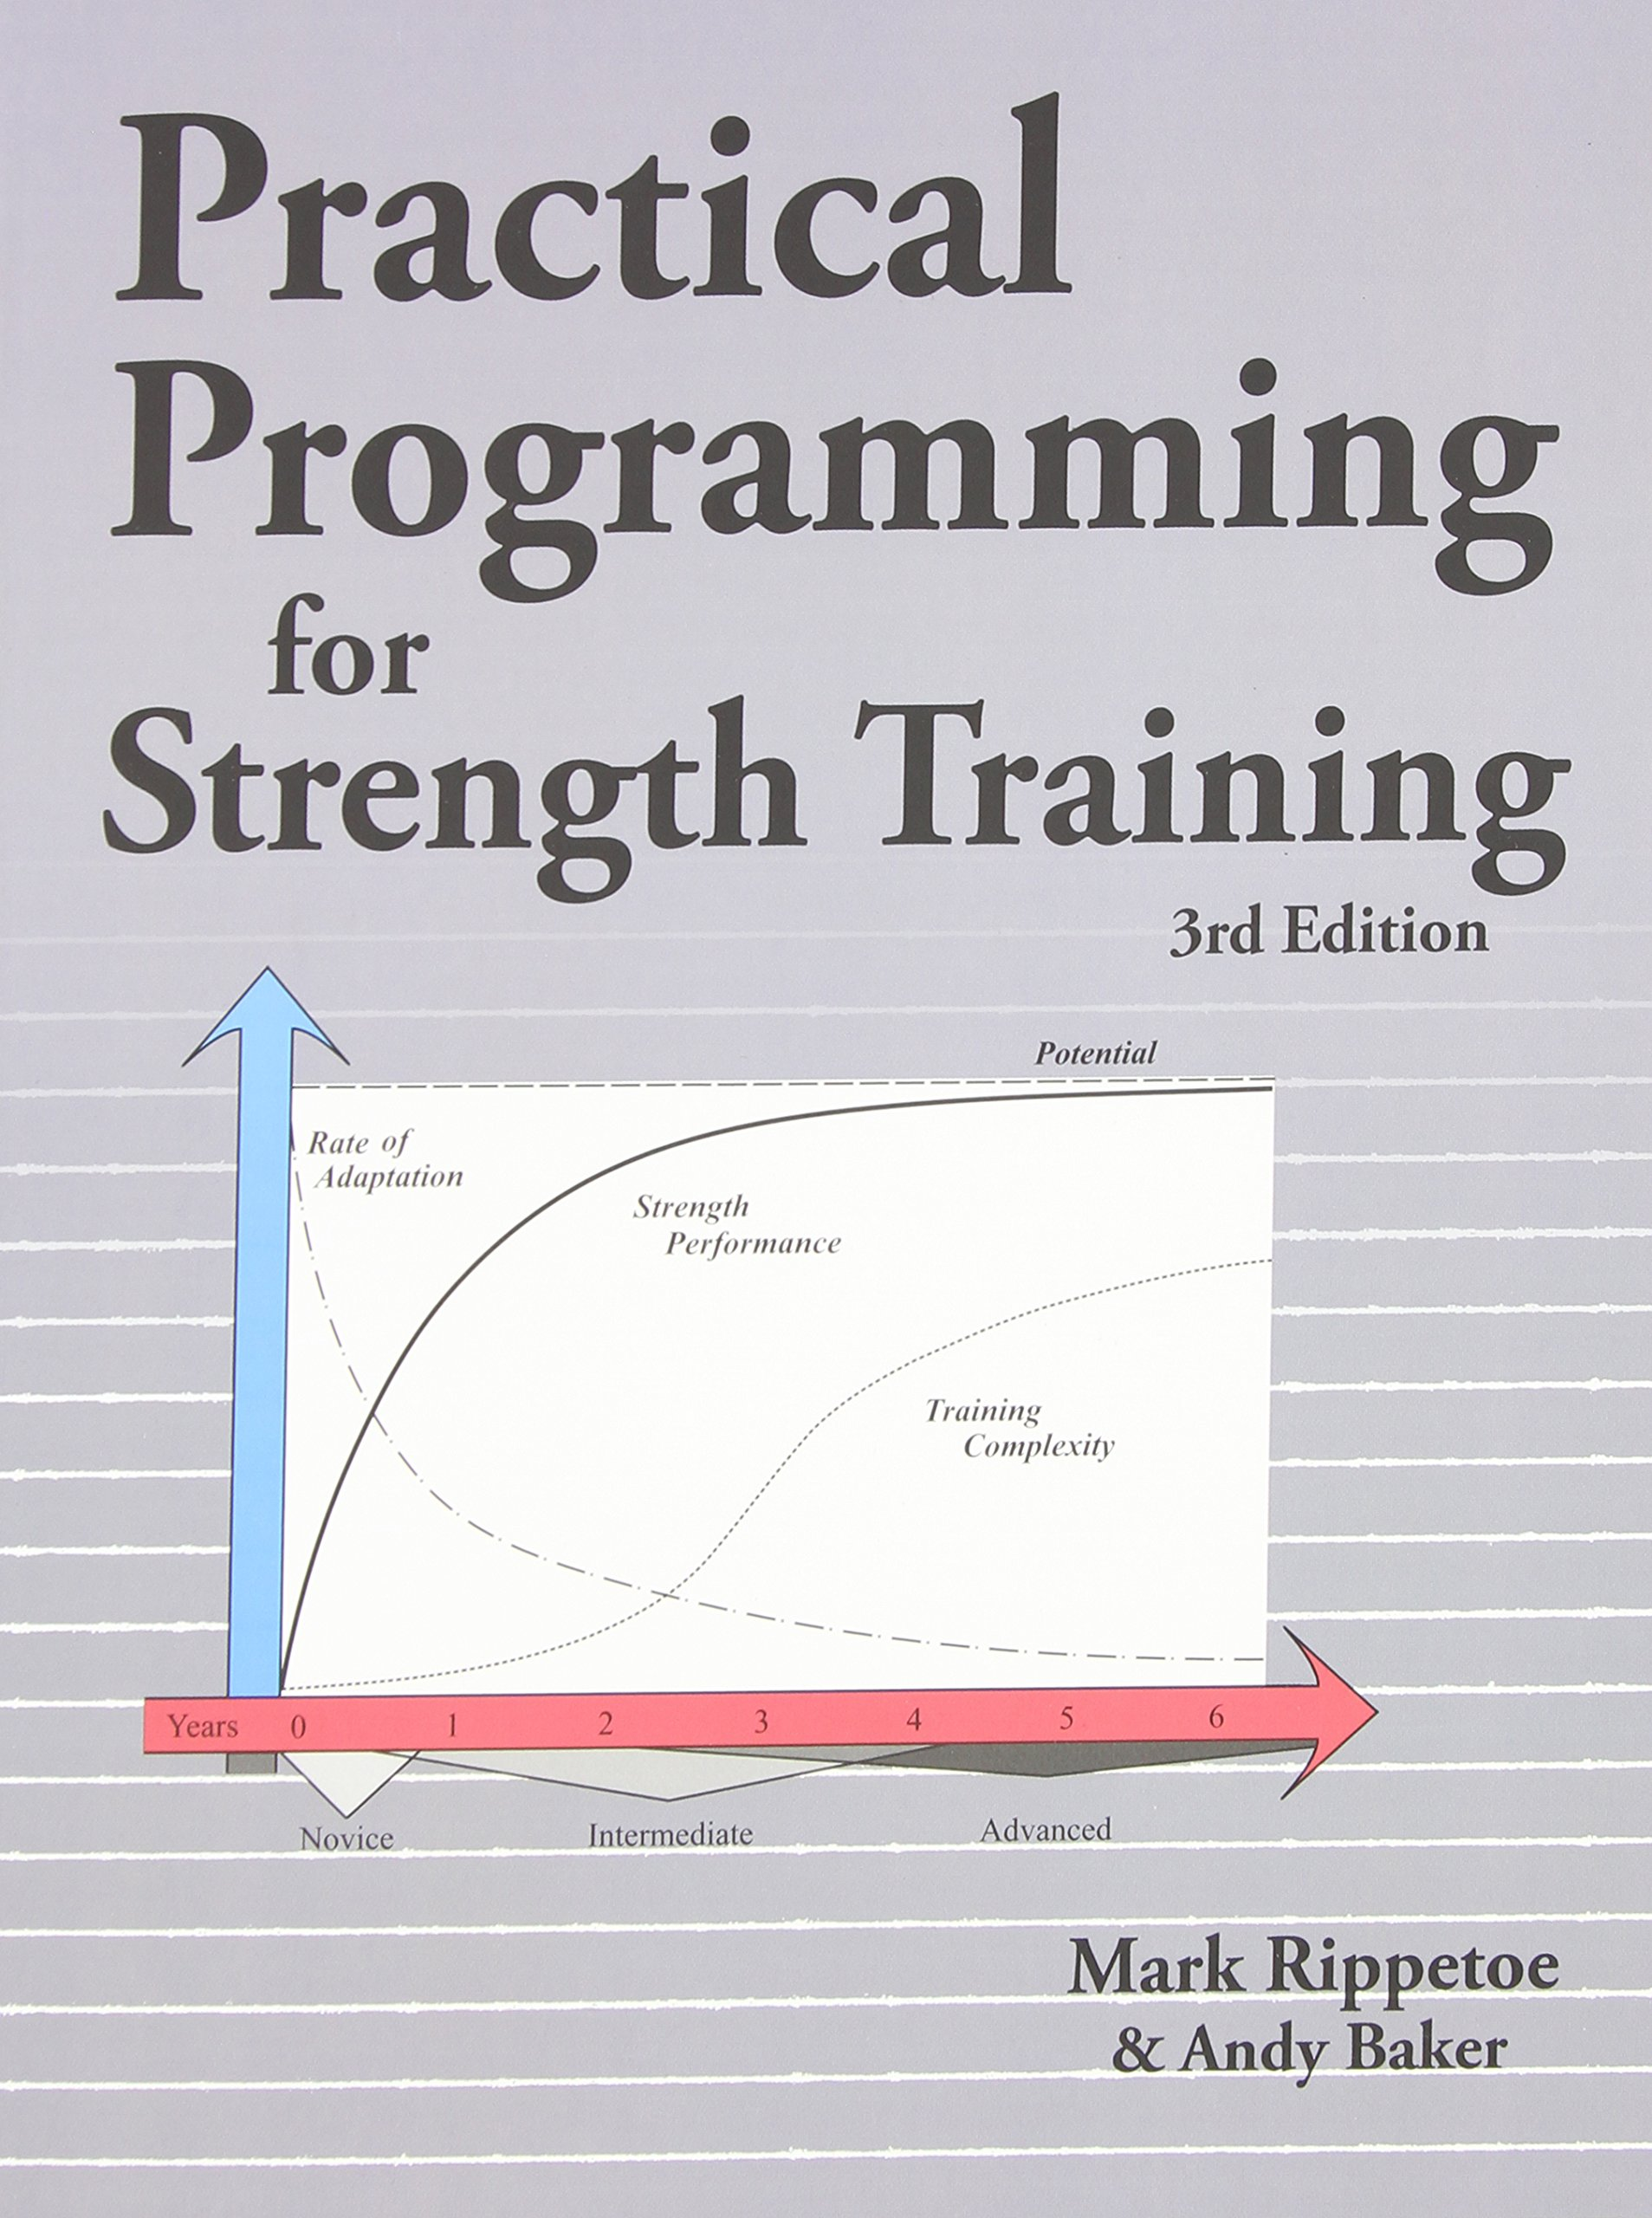 Practical Programming for Strength Training by The Aasgaard Company